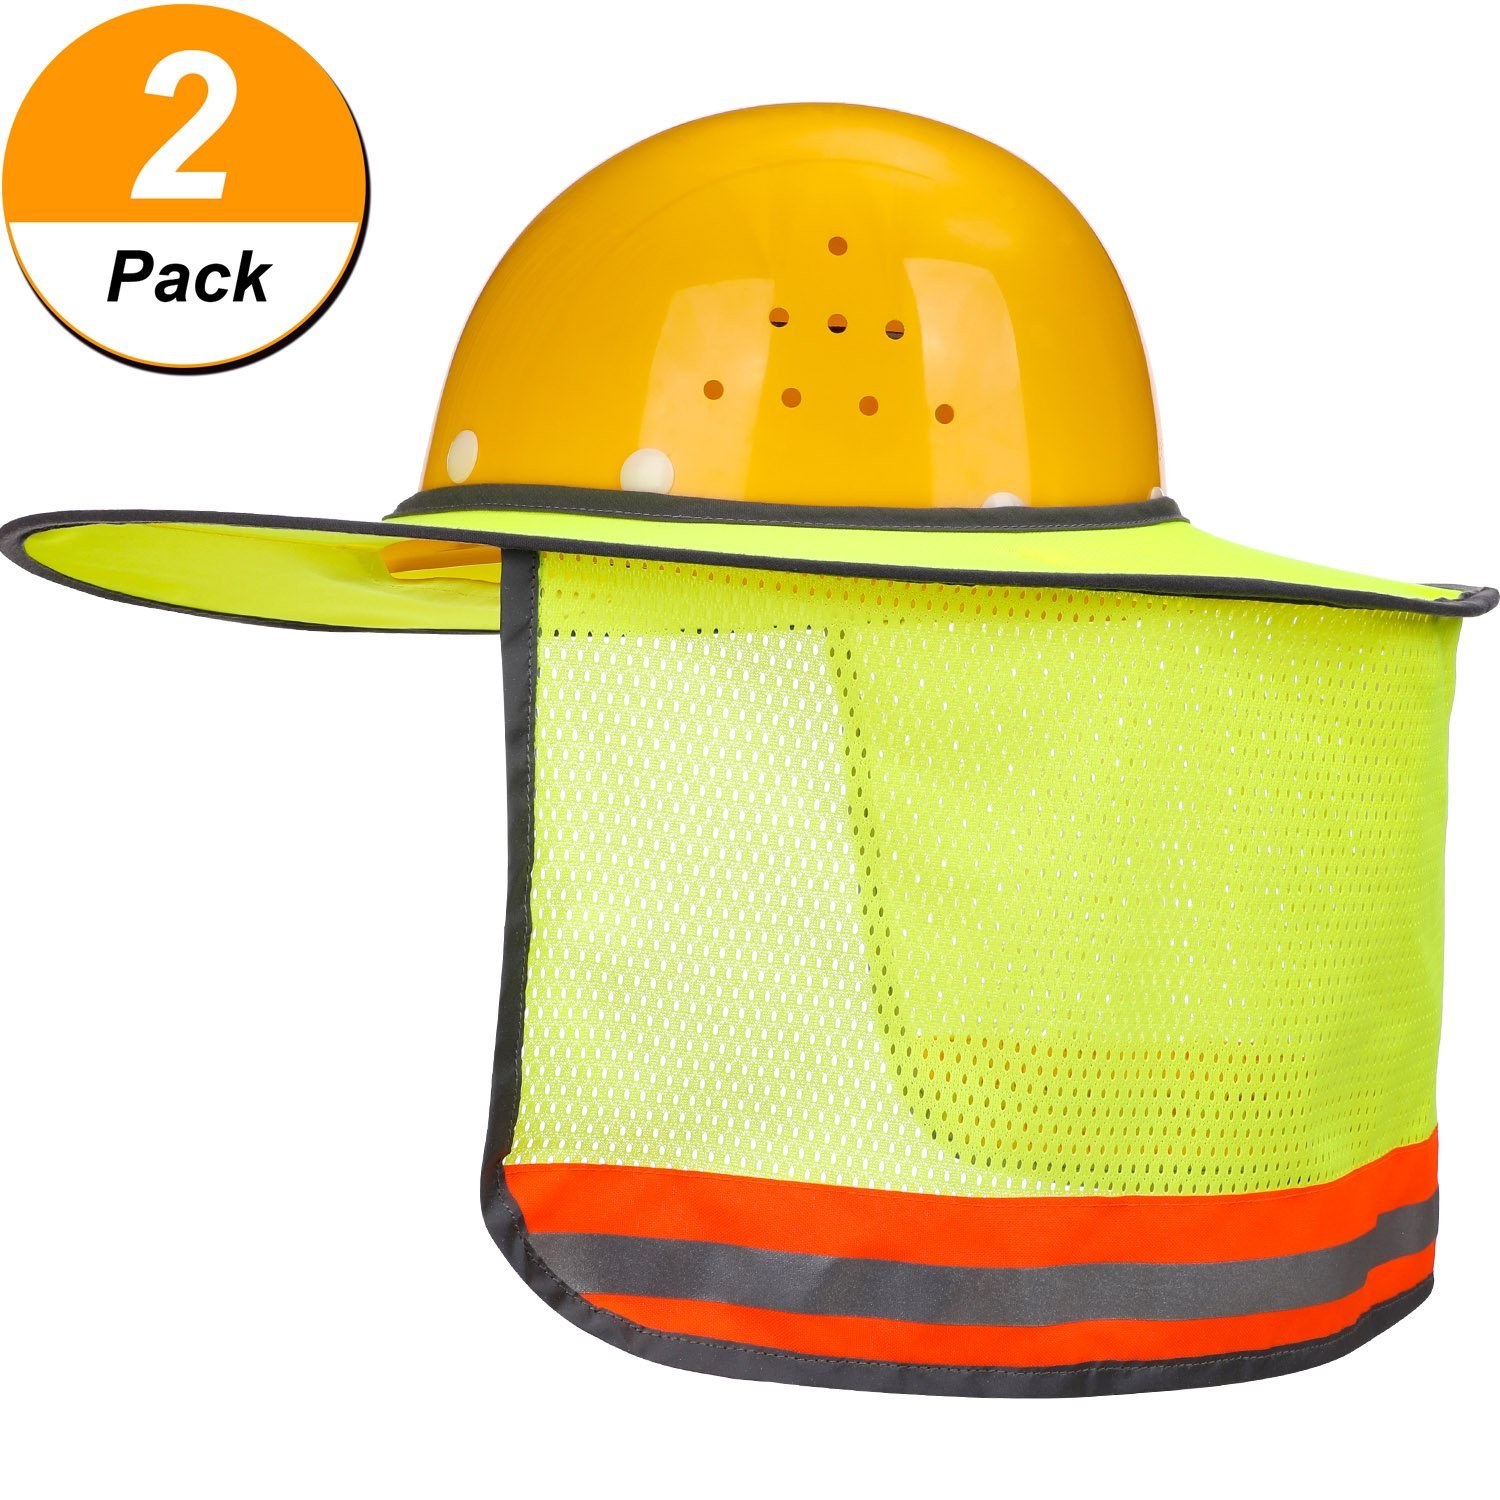 8eaf4445 Get Quotations · Maxdot 2 Pack Hard Hat Sun Neck Shield Full Brim Sunshade  for Hard Hats, Reflective